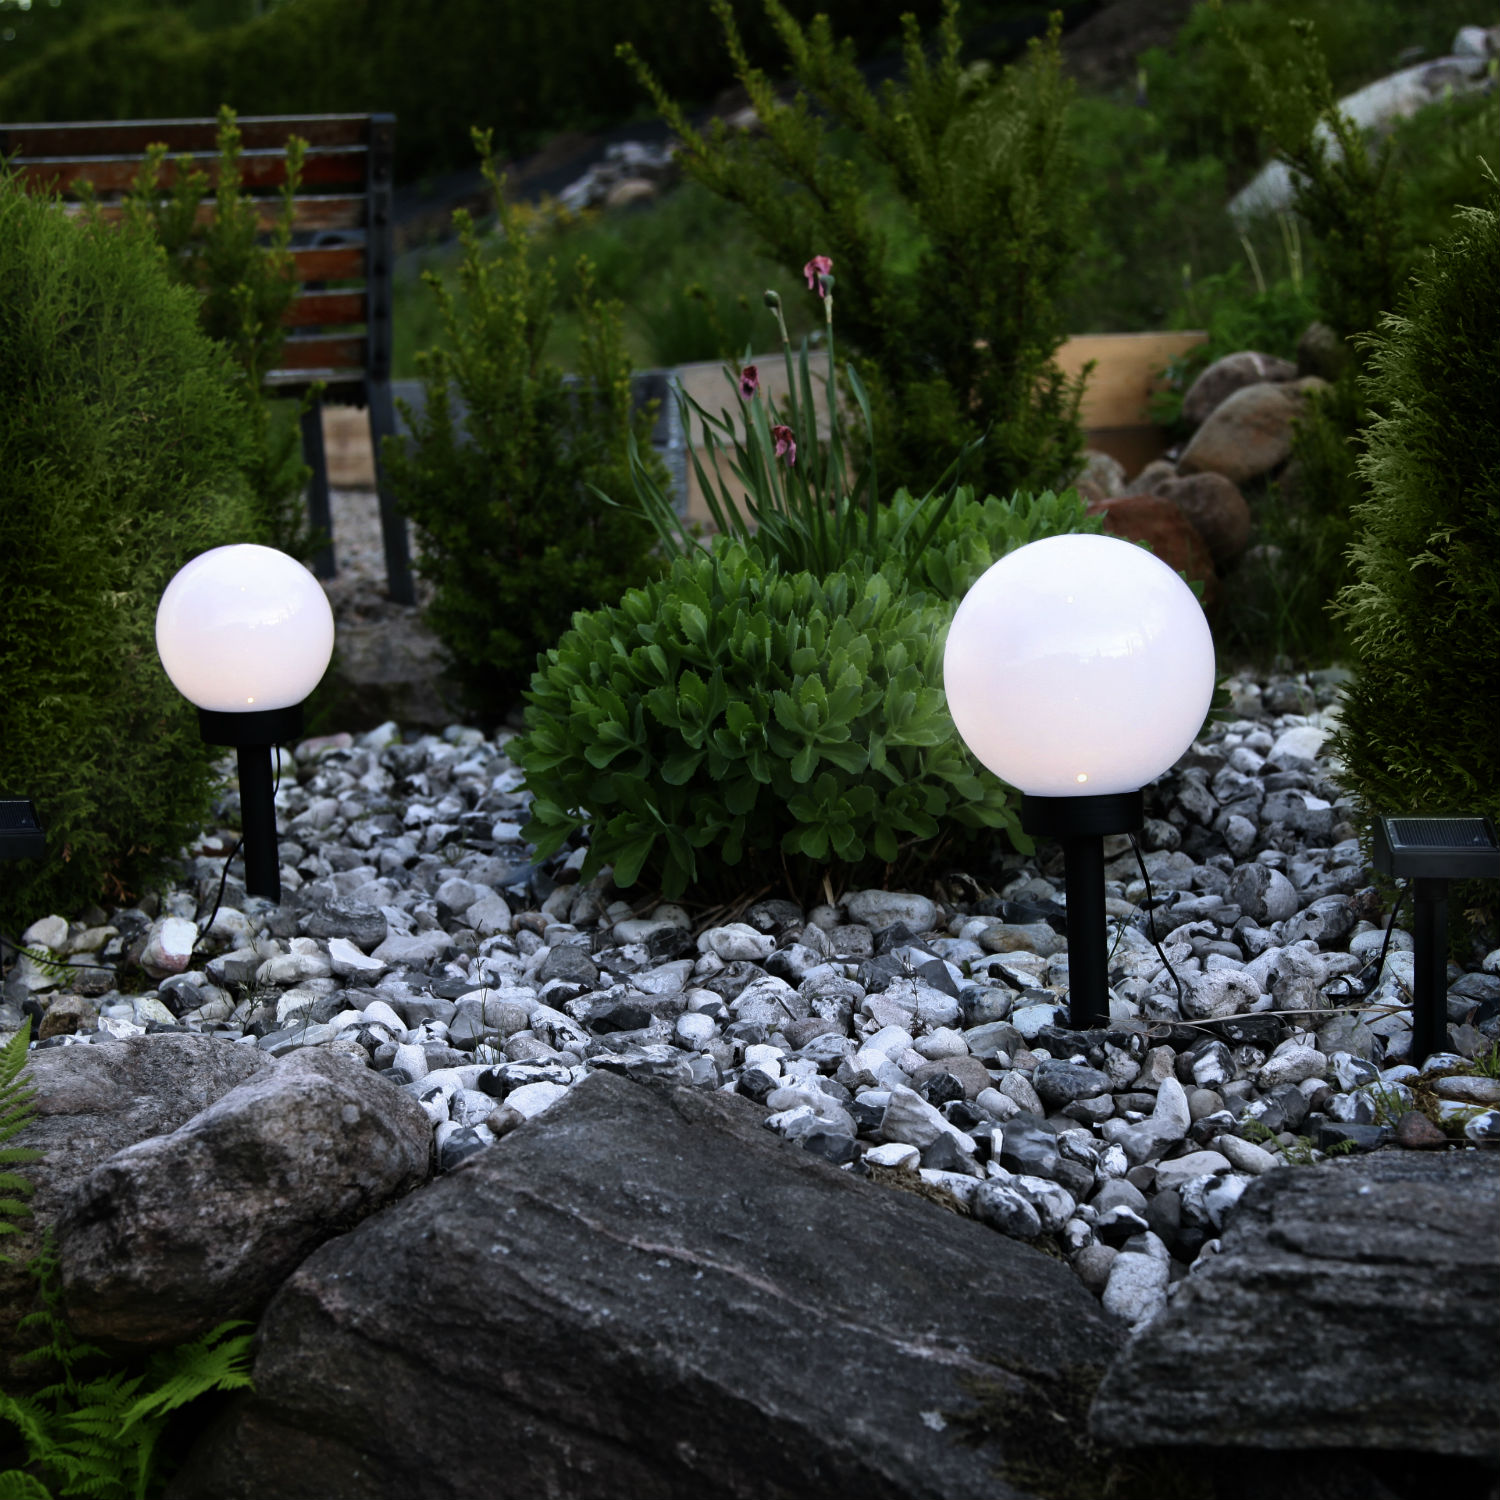 Awesome eclairage exterieur lampe jardin photos design for Eclairage exterieur